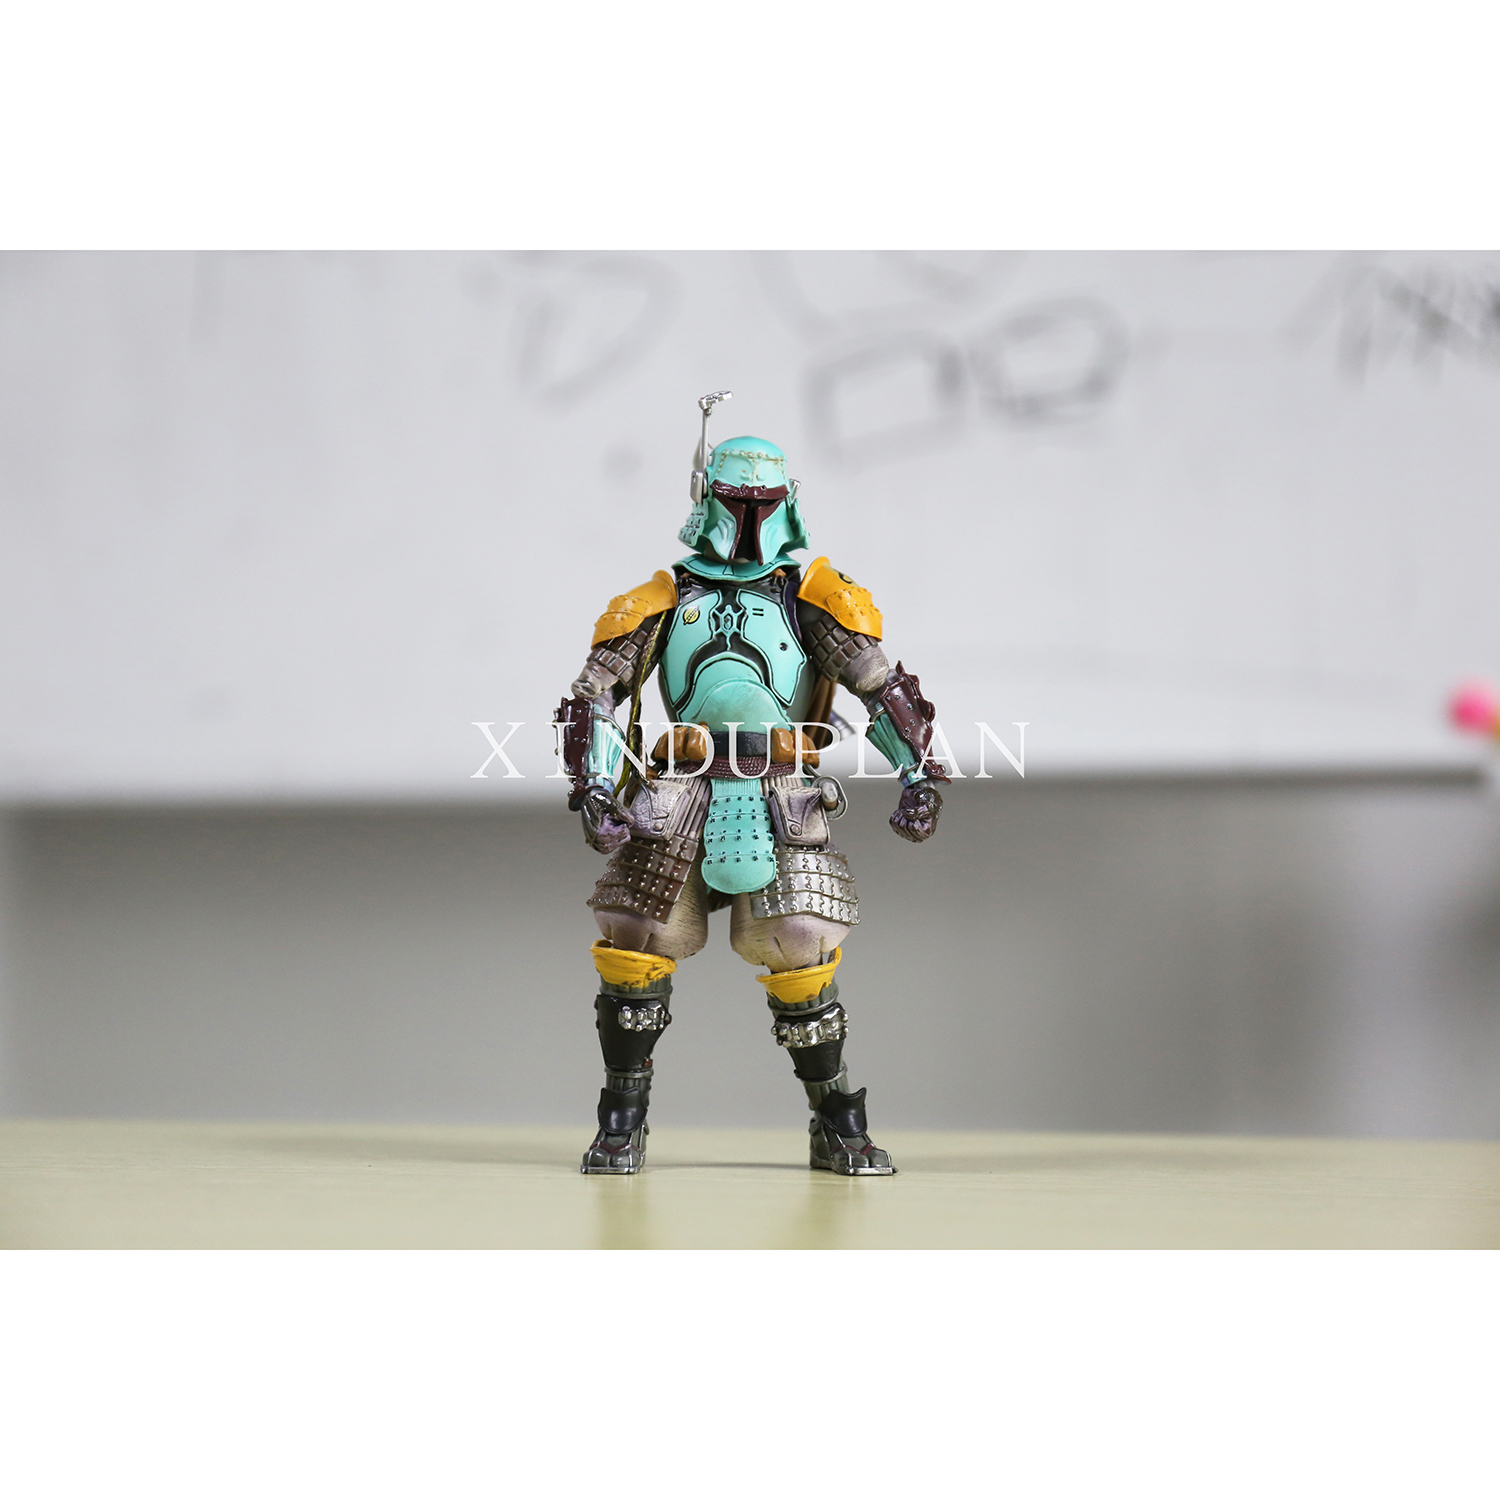 XINDUPLAN Star Wars MOVIE REALIZATION Boba Fett Bounty Hunter Darth Vader Action Figure Toys 18cm Kids Collection Model 0256 new hot 18cm one piece donquixote doflamingo action figure toys doll collection christmas gift with box minge3